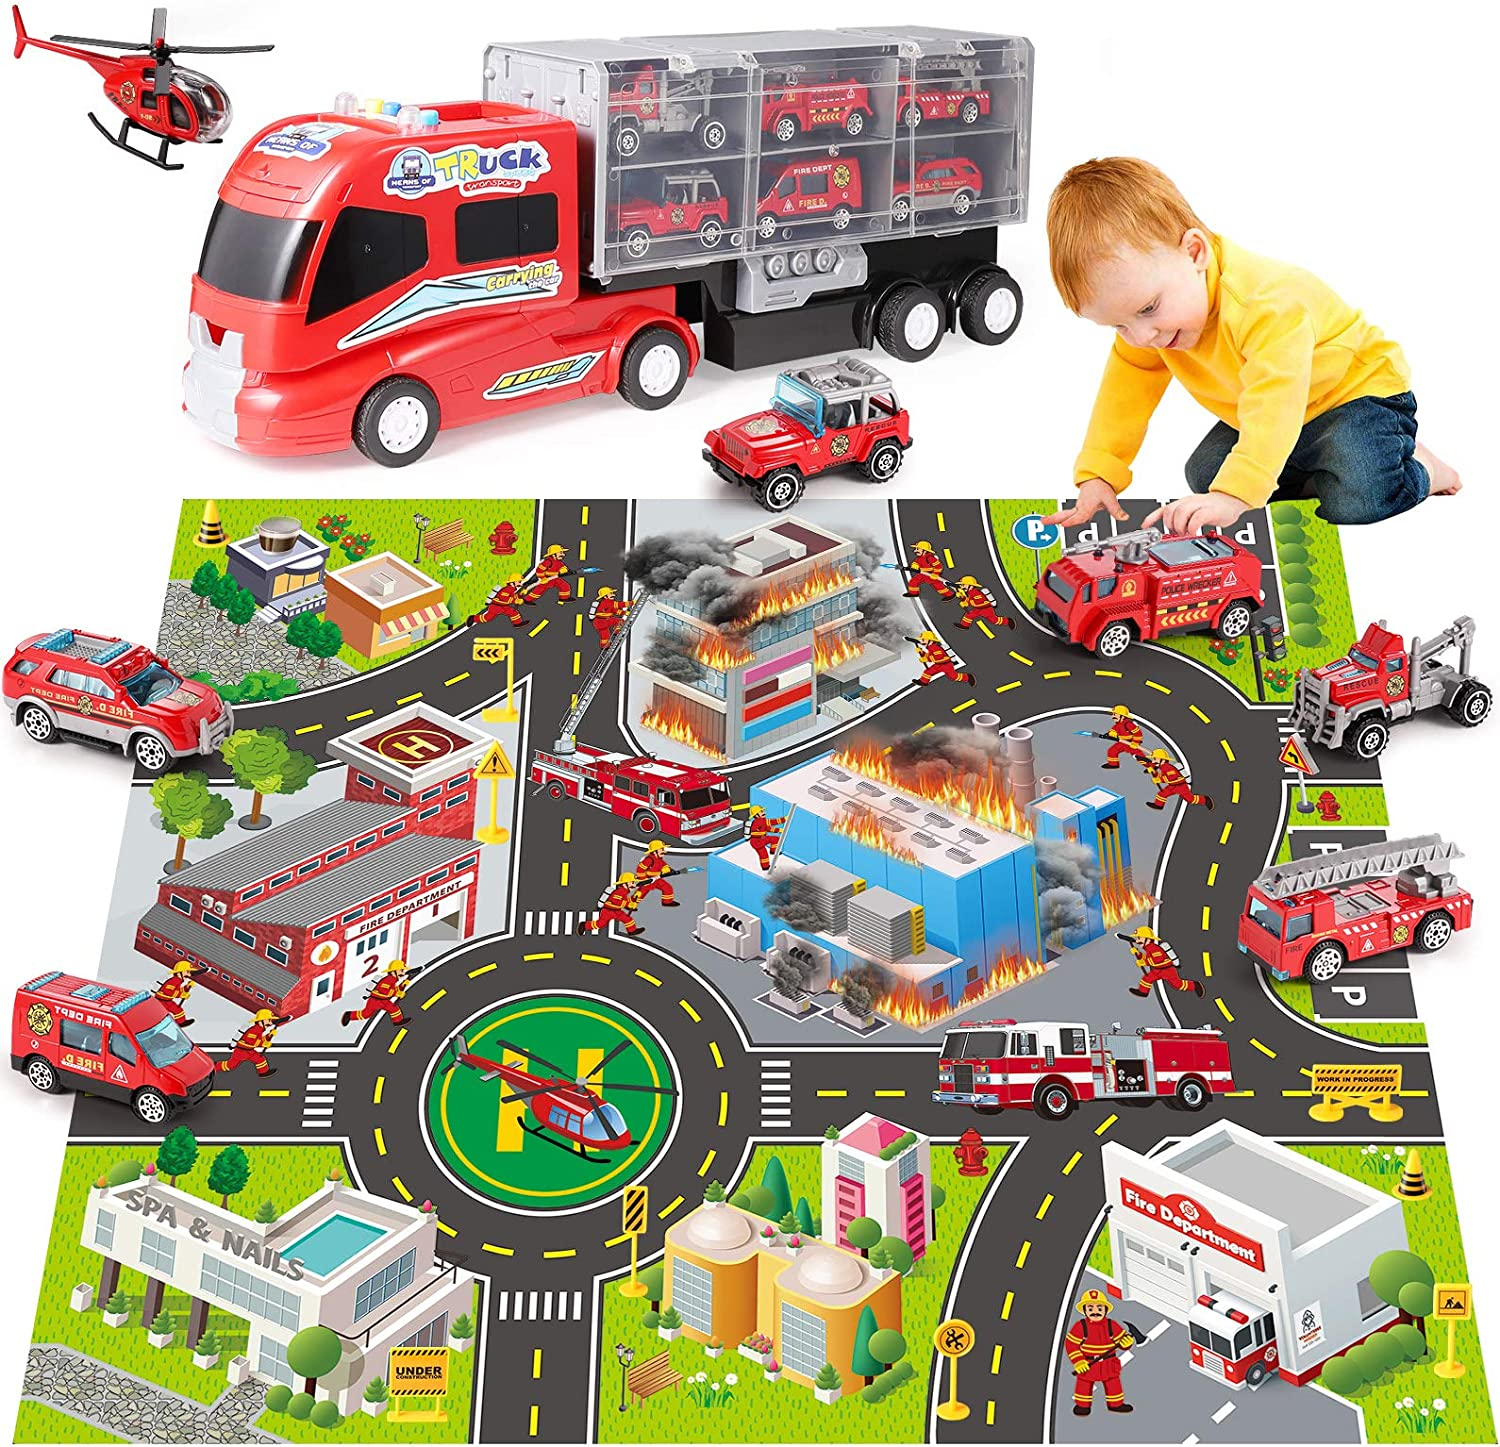 DOLIVE Kids Fire Carrier Truck Ranking TOP5 Transport Atlanta Mall Firefigh Set Car - Play